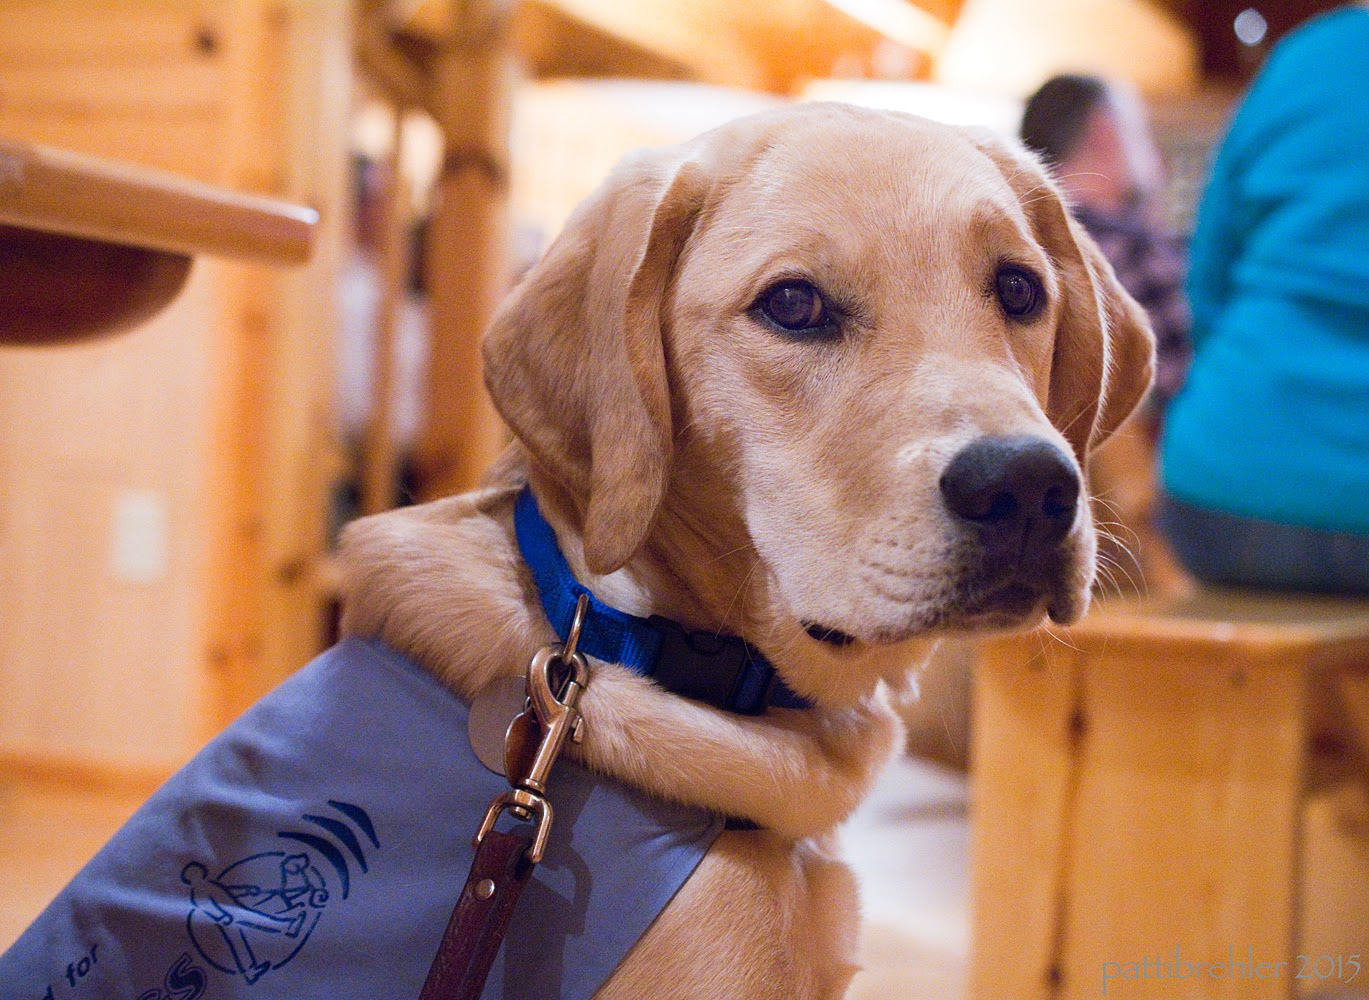 A low, closeup of a young yellow lab/golden retriever mix puppy. The puppy is sitting down and while his body is facing the right, he has his head turned toward the camera. He is wearing the blue Future Leader Dog jacket and a blue collar with his leash clipped to it. There are a few people in the background out of focus, sitting on wooden benches.